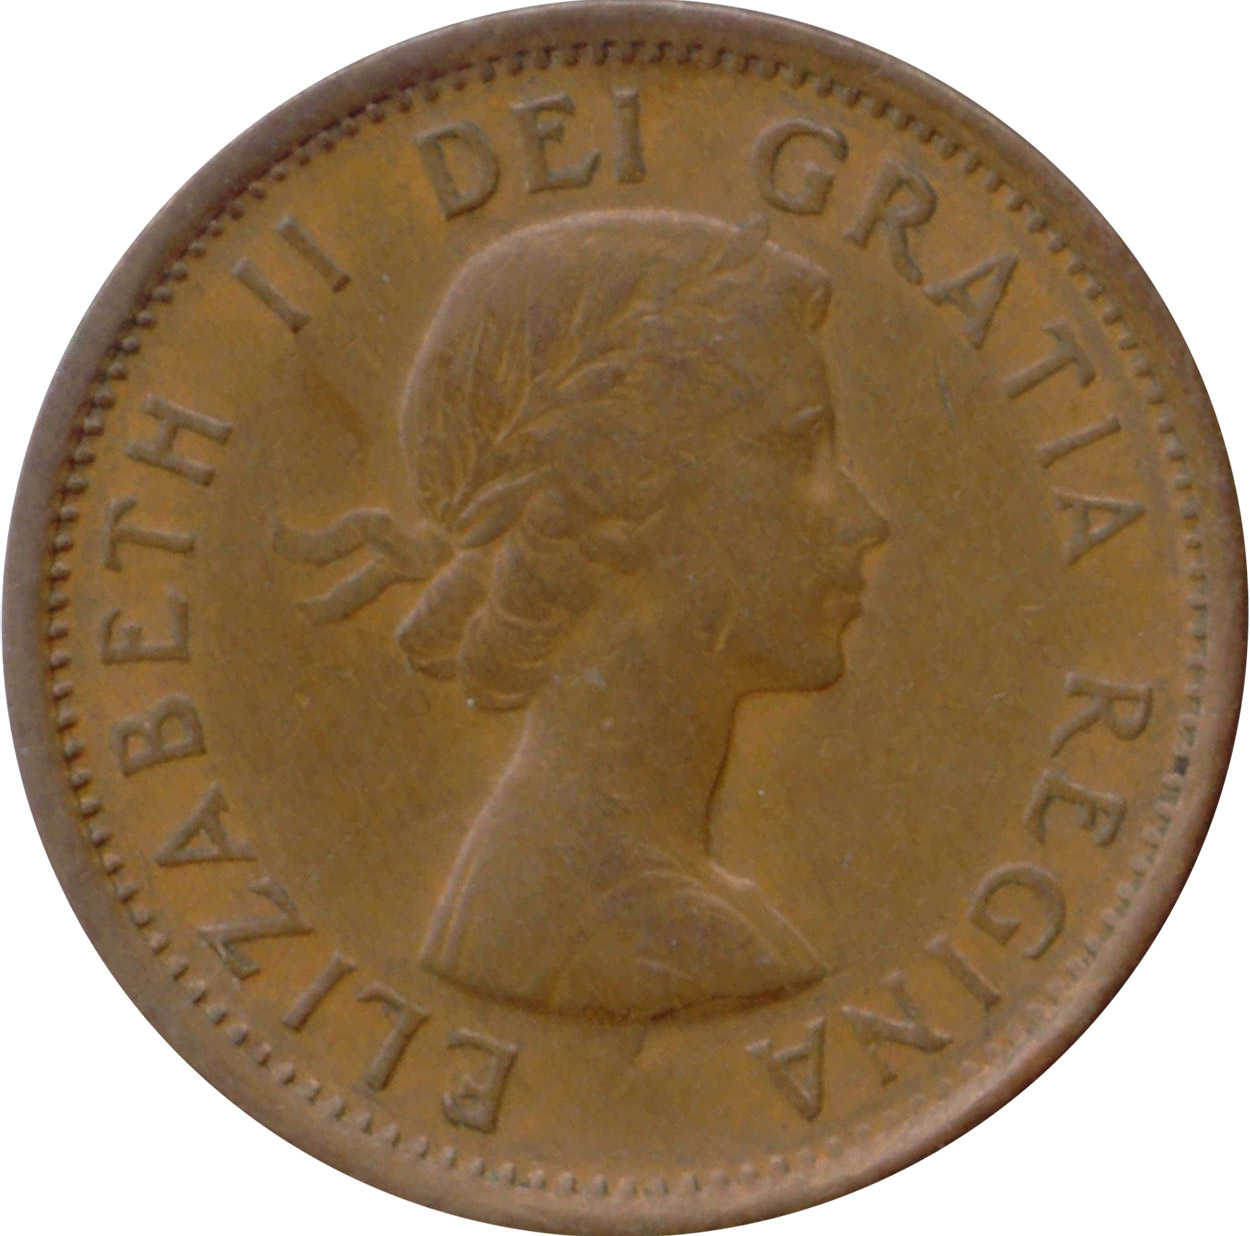 EF-40 - 1 cent 1953 to 1964 - Elizabeth II